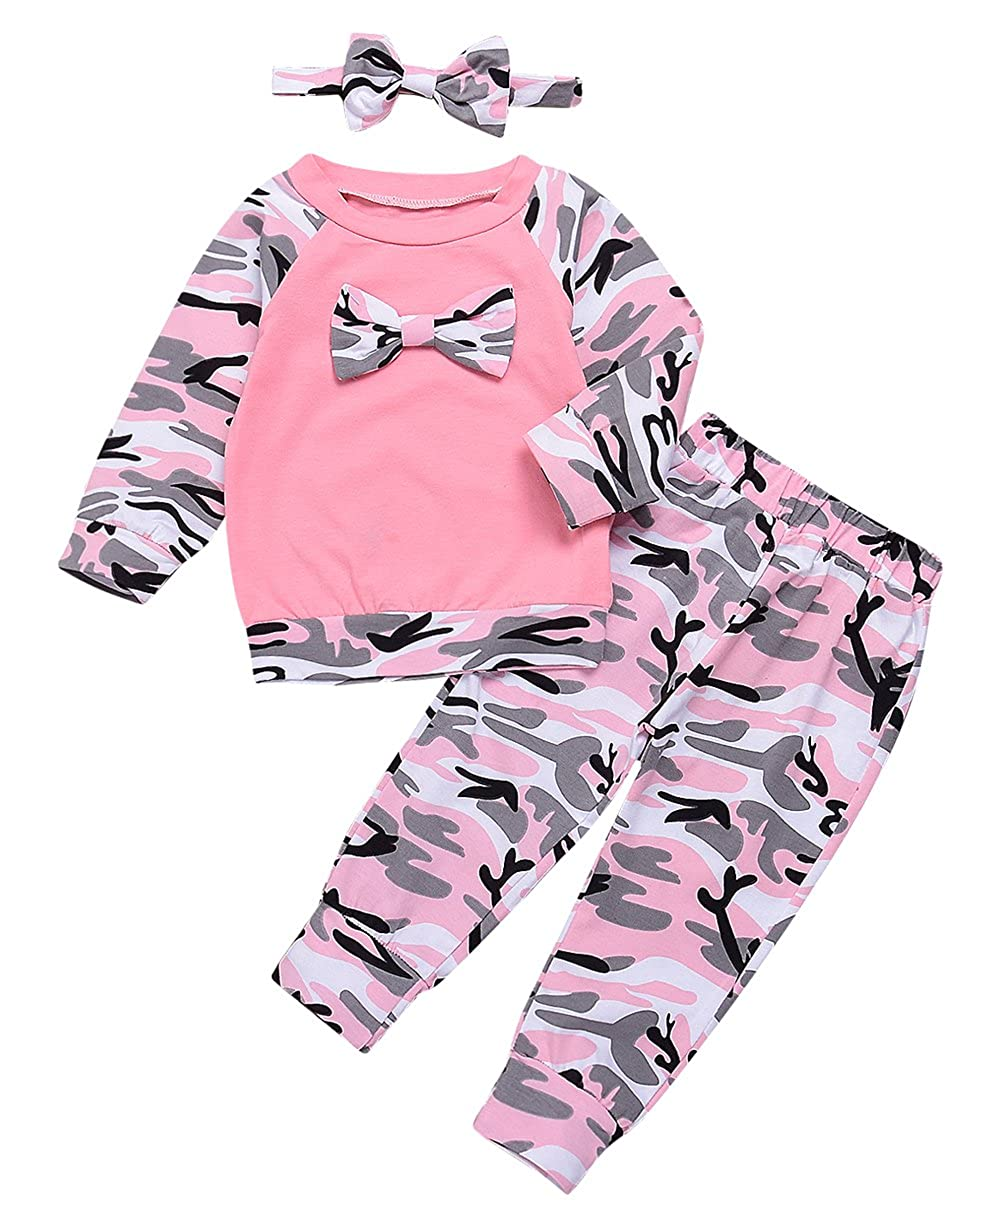 Happy Town Baby Boys Girls Clothes Long Sleeve Hoodie Tops Sweatsuit Long Pants Outfit Set